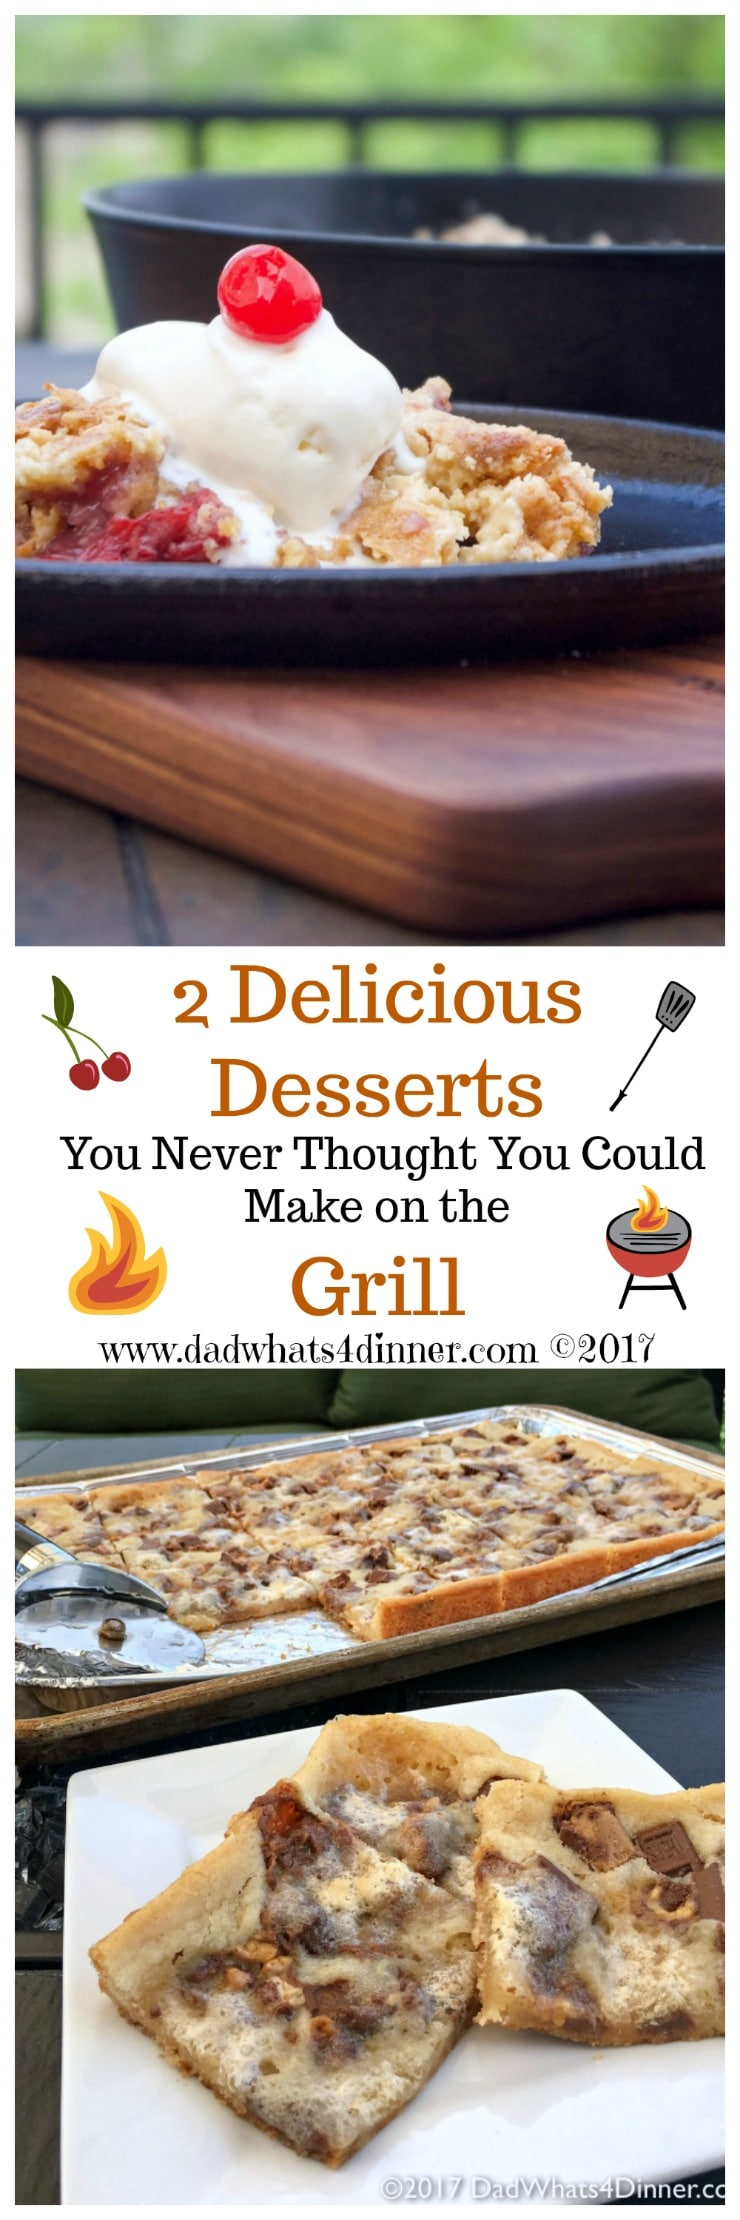 Your family will love these two Unexpected Desserts Made on the Grill made with simple everyday ingredients. Take your grilling to a new level! www.dadwhats4dinner.com #ad #grilling #desserts #familydollar